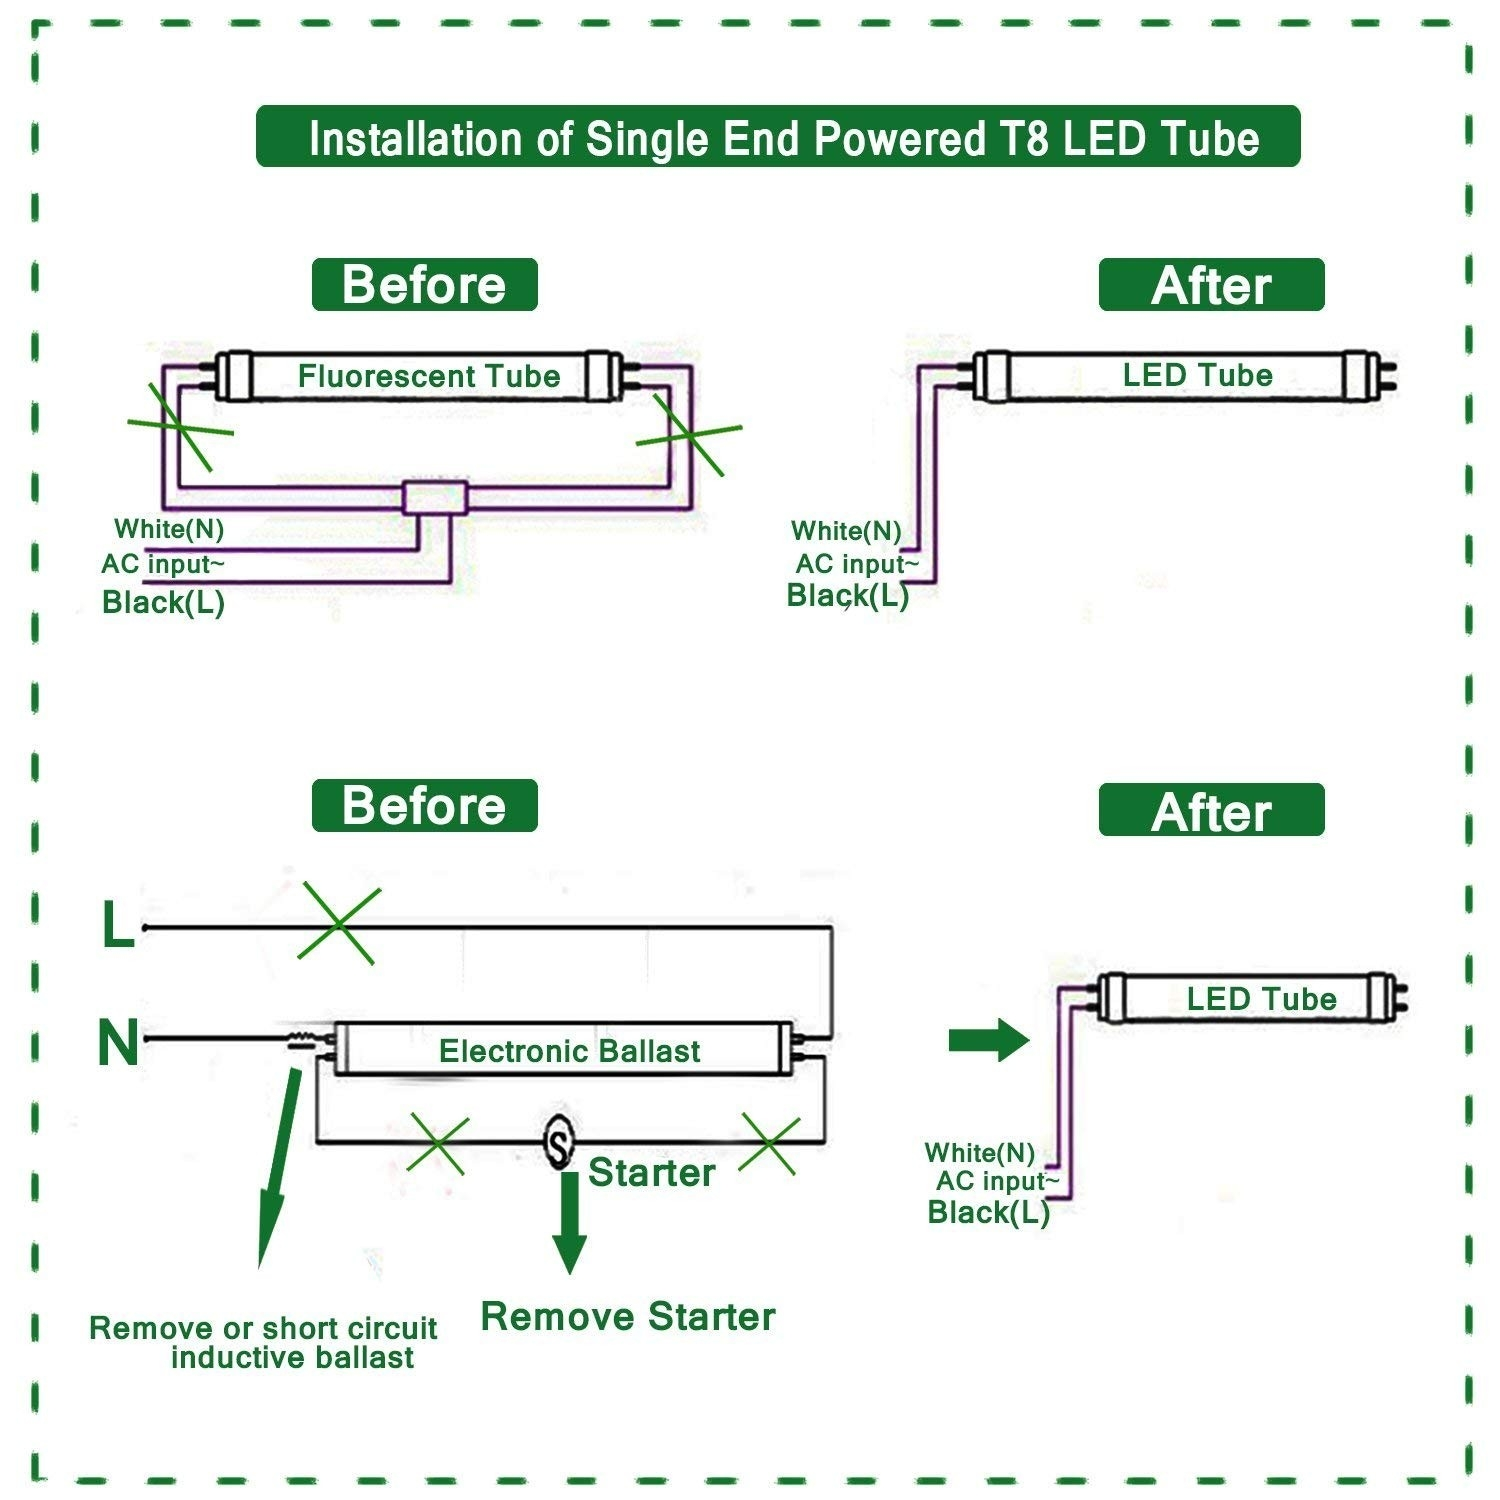 led tube light wiring diagram Download-Wiring Diagram for Led Tubes New Wiring Diagram Led Tube Philips Refrence T8 Led Tube Wiring 1-f